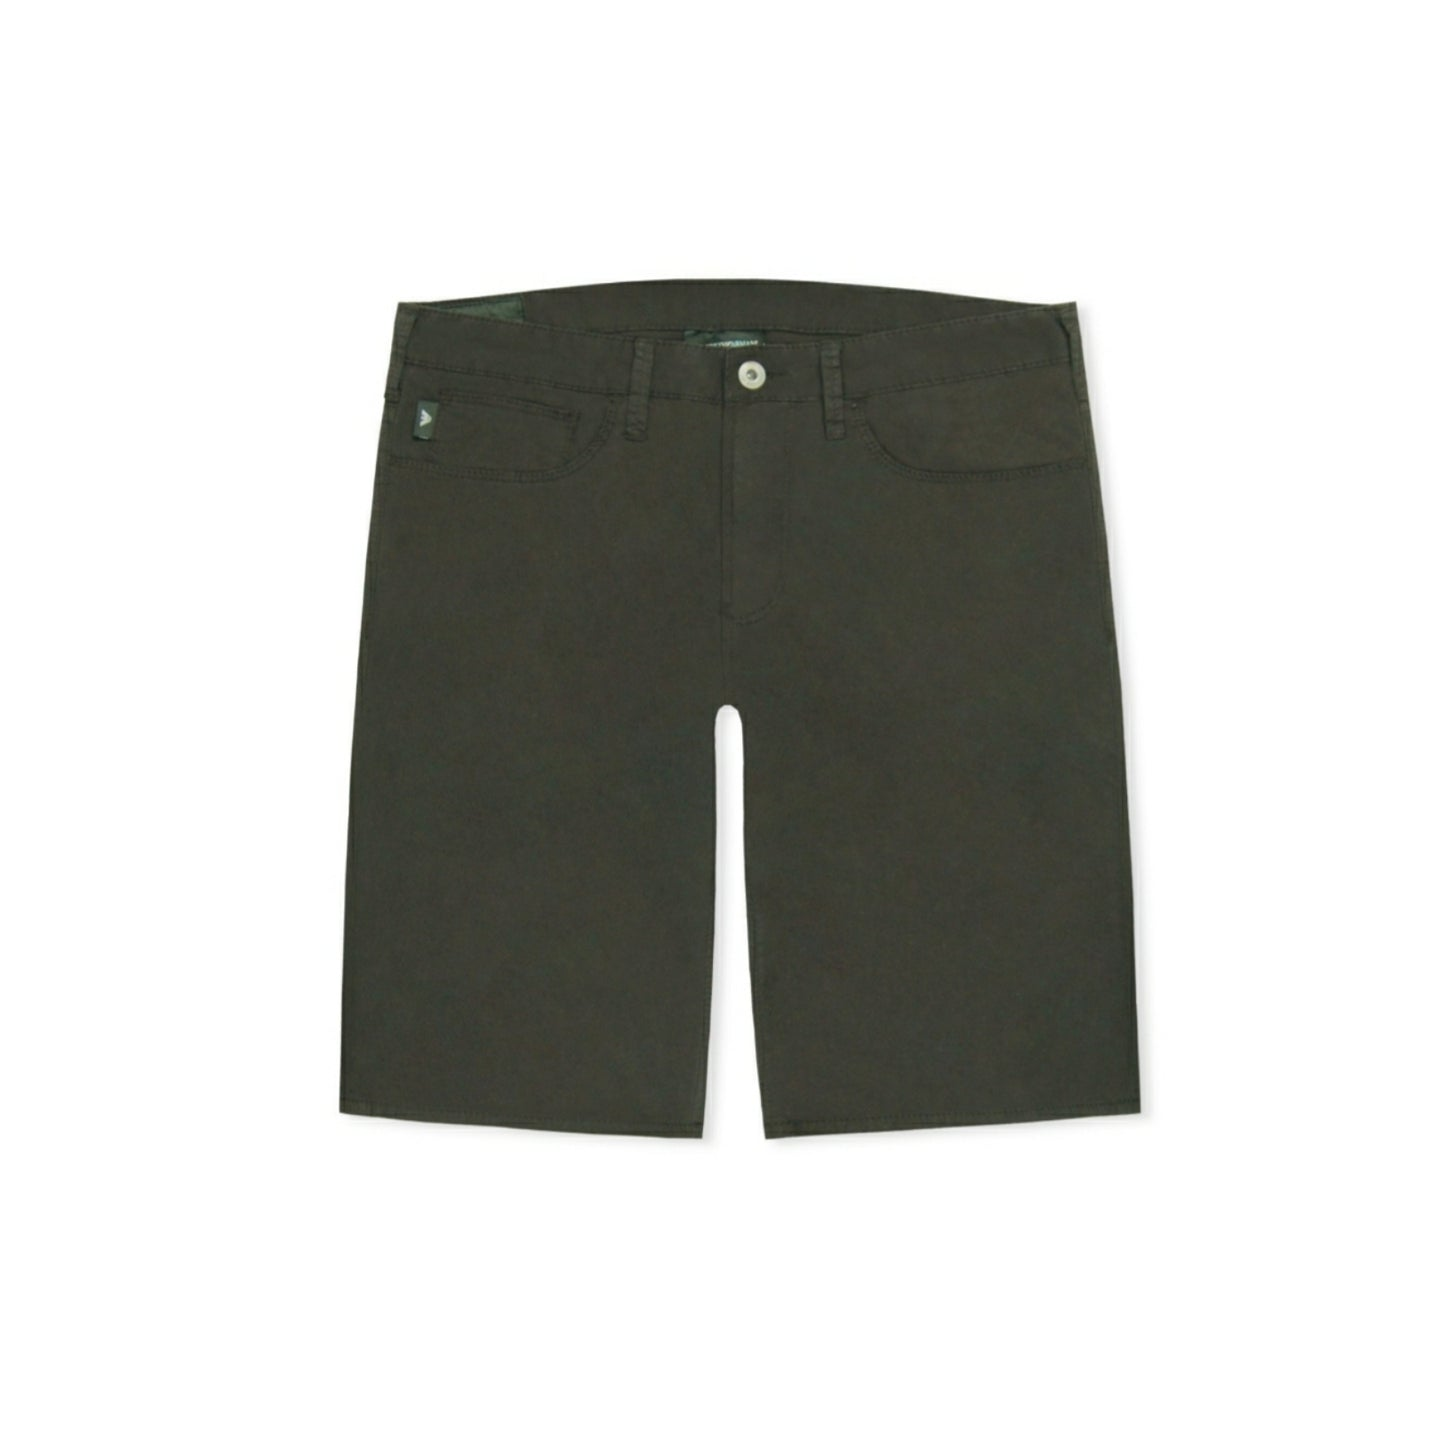 Emporio Armani Slim Chino Shorts - Black